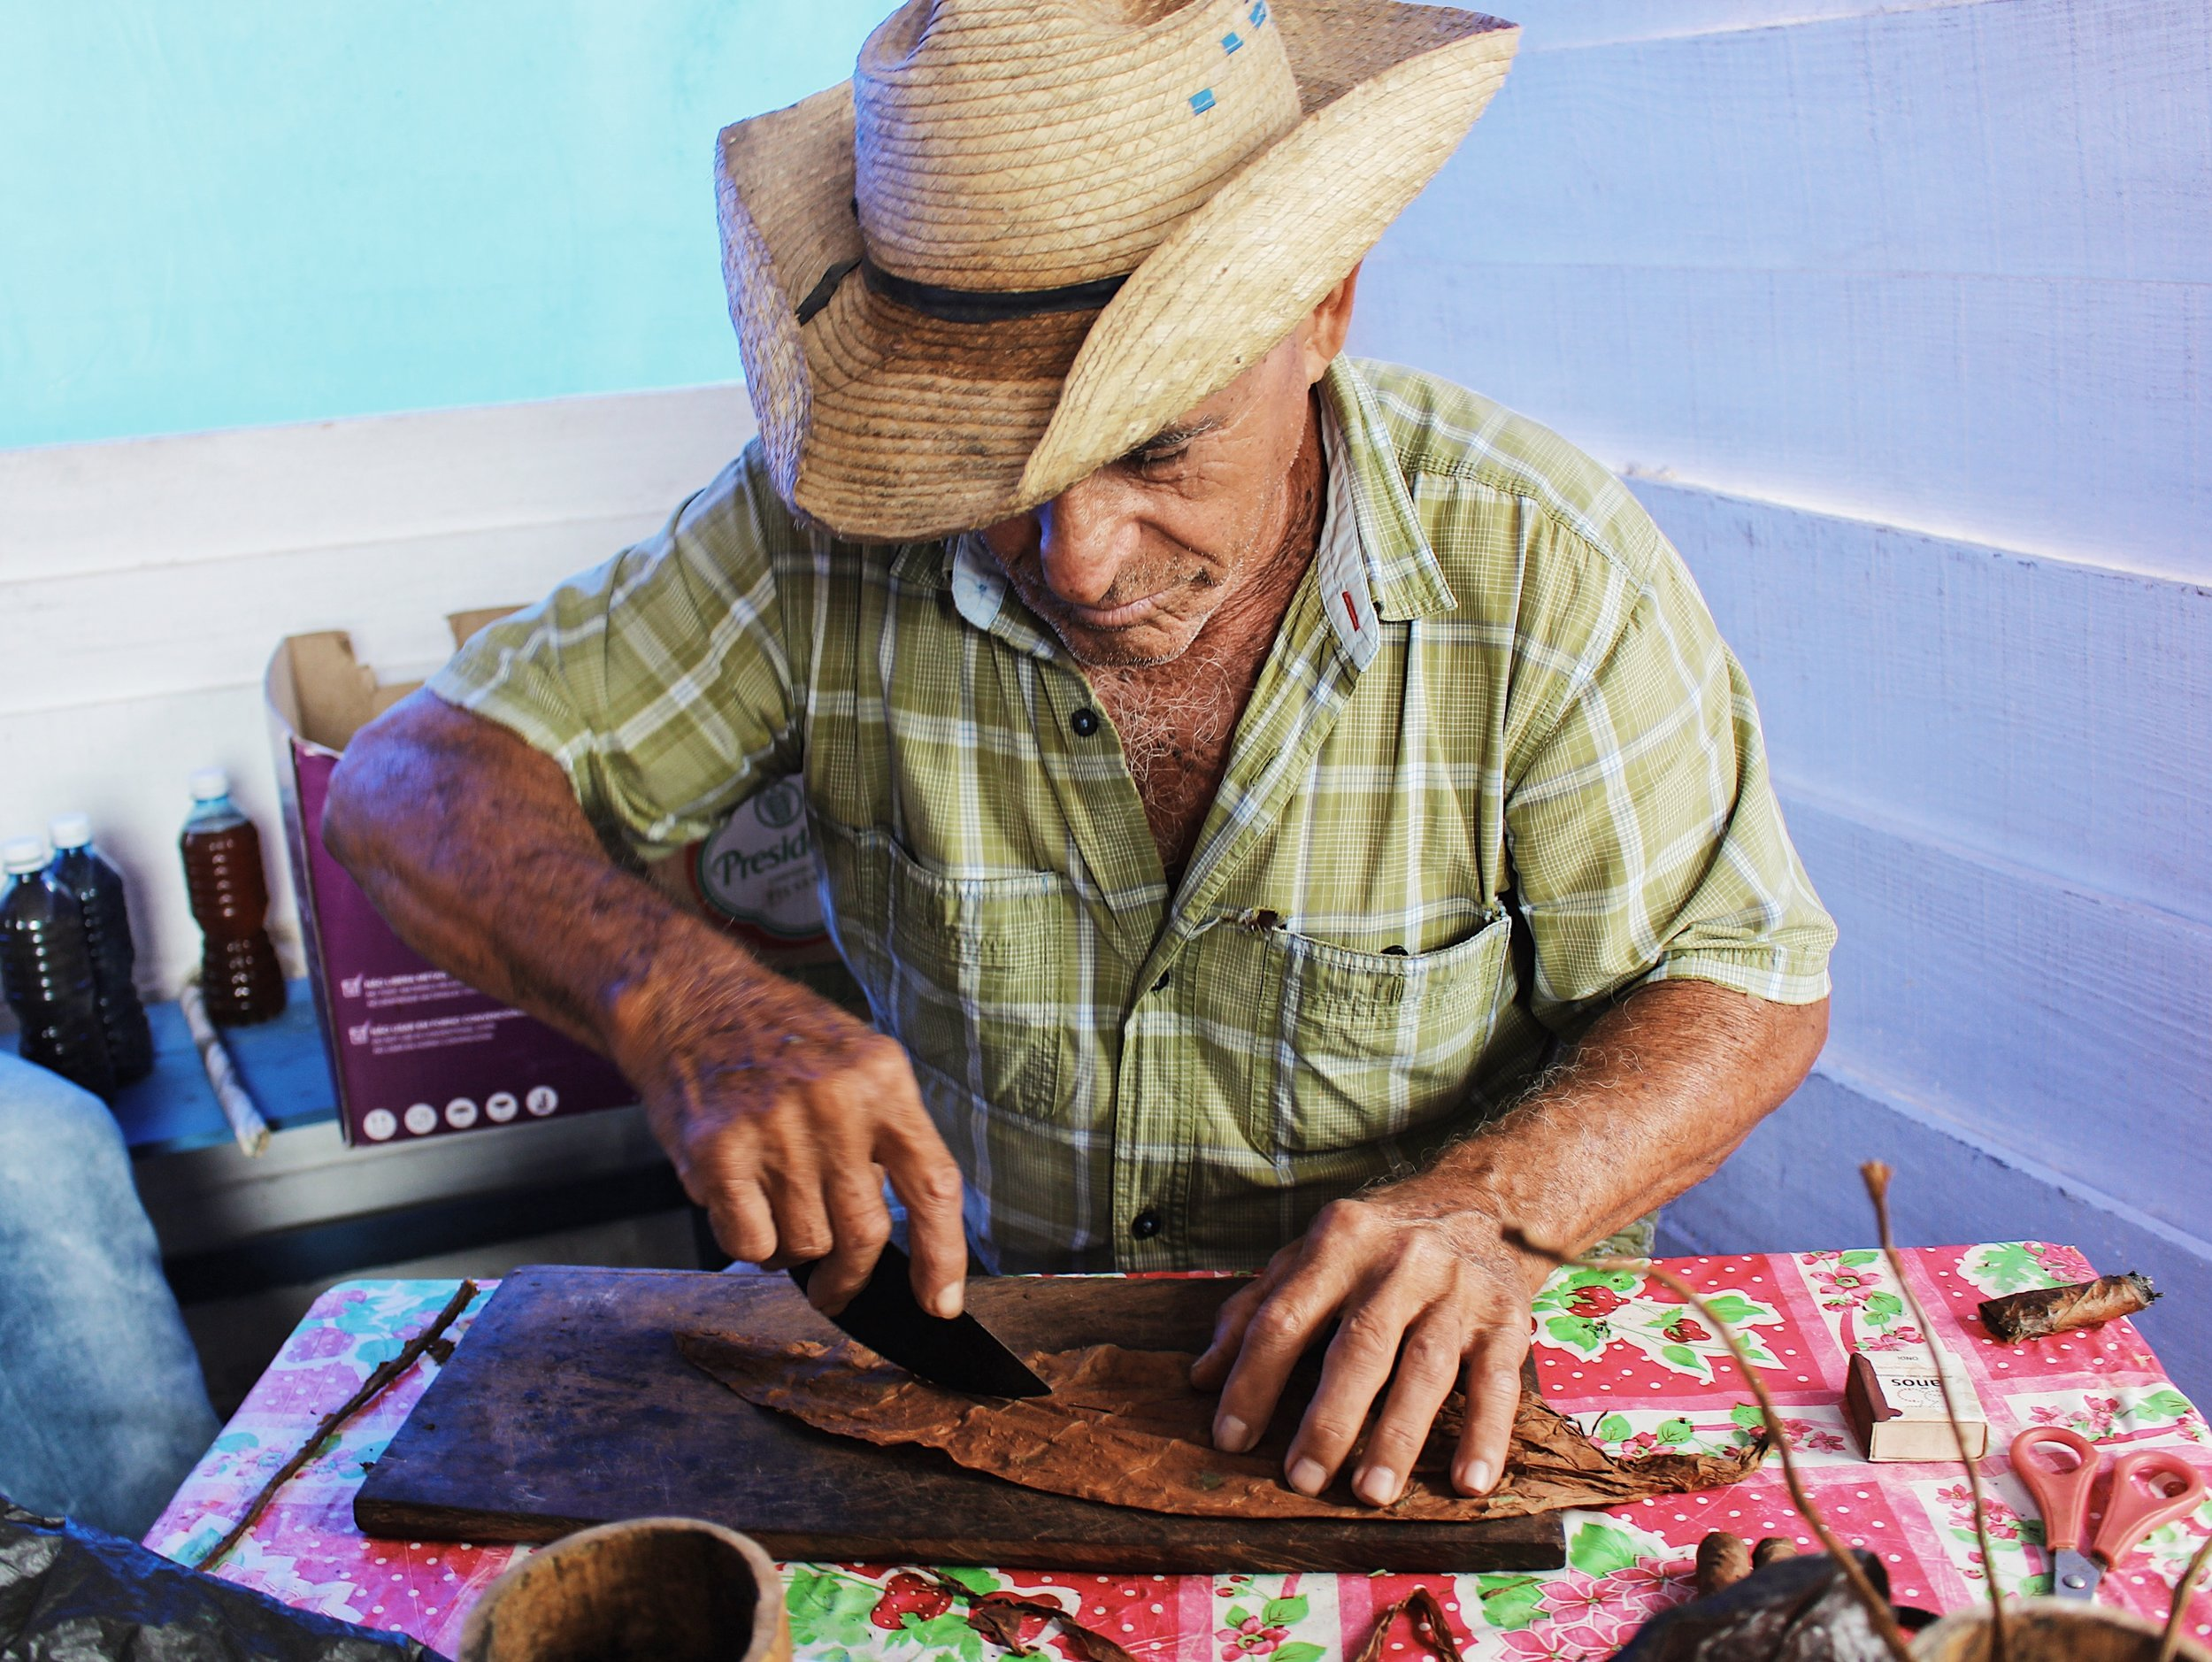 farmer rolling a cigar by hand